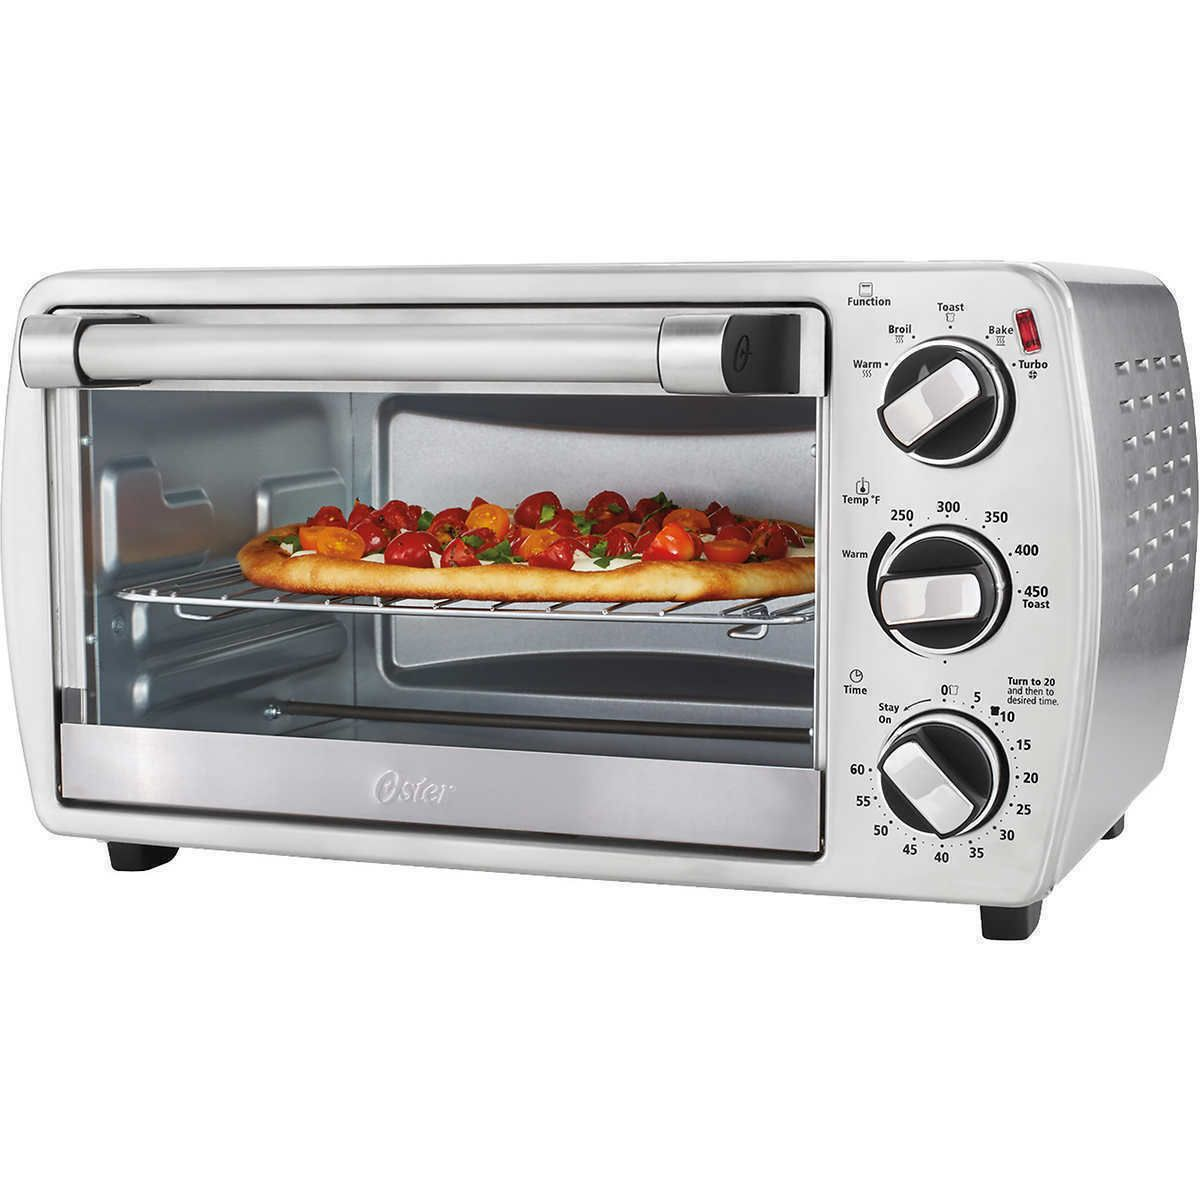 Details About Oster 6 Slice Convection Countertop Oven